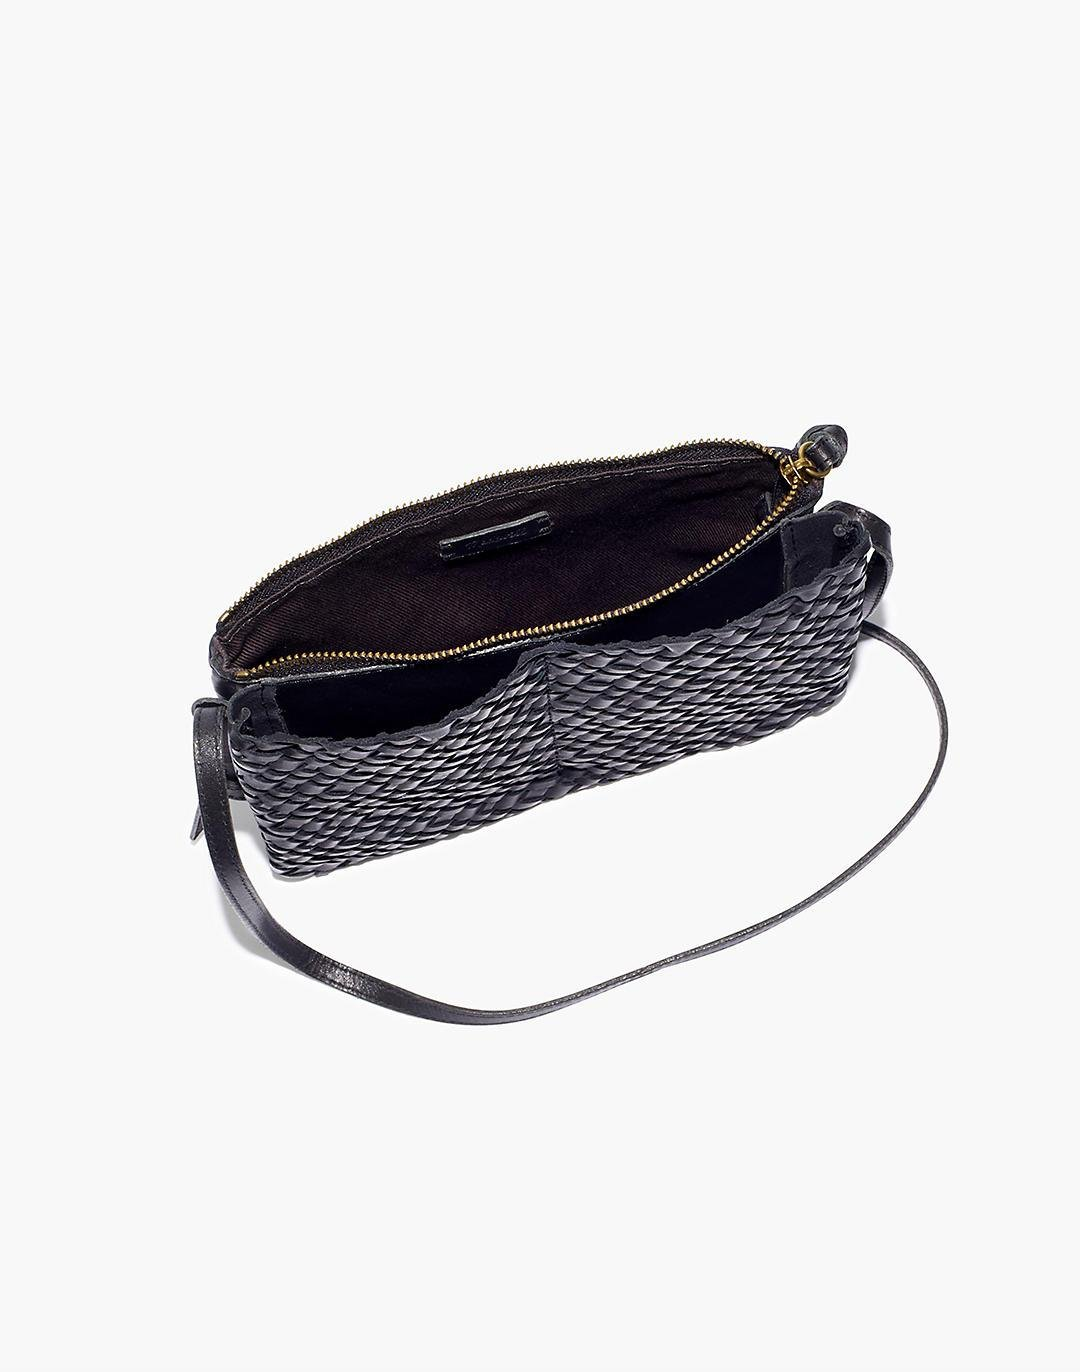 The Knotted Crossbody Bag in Woven Leather 1